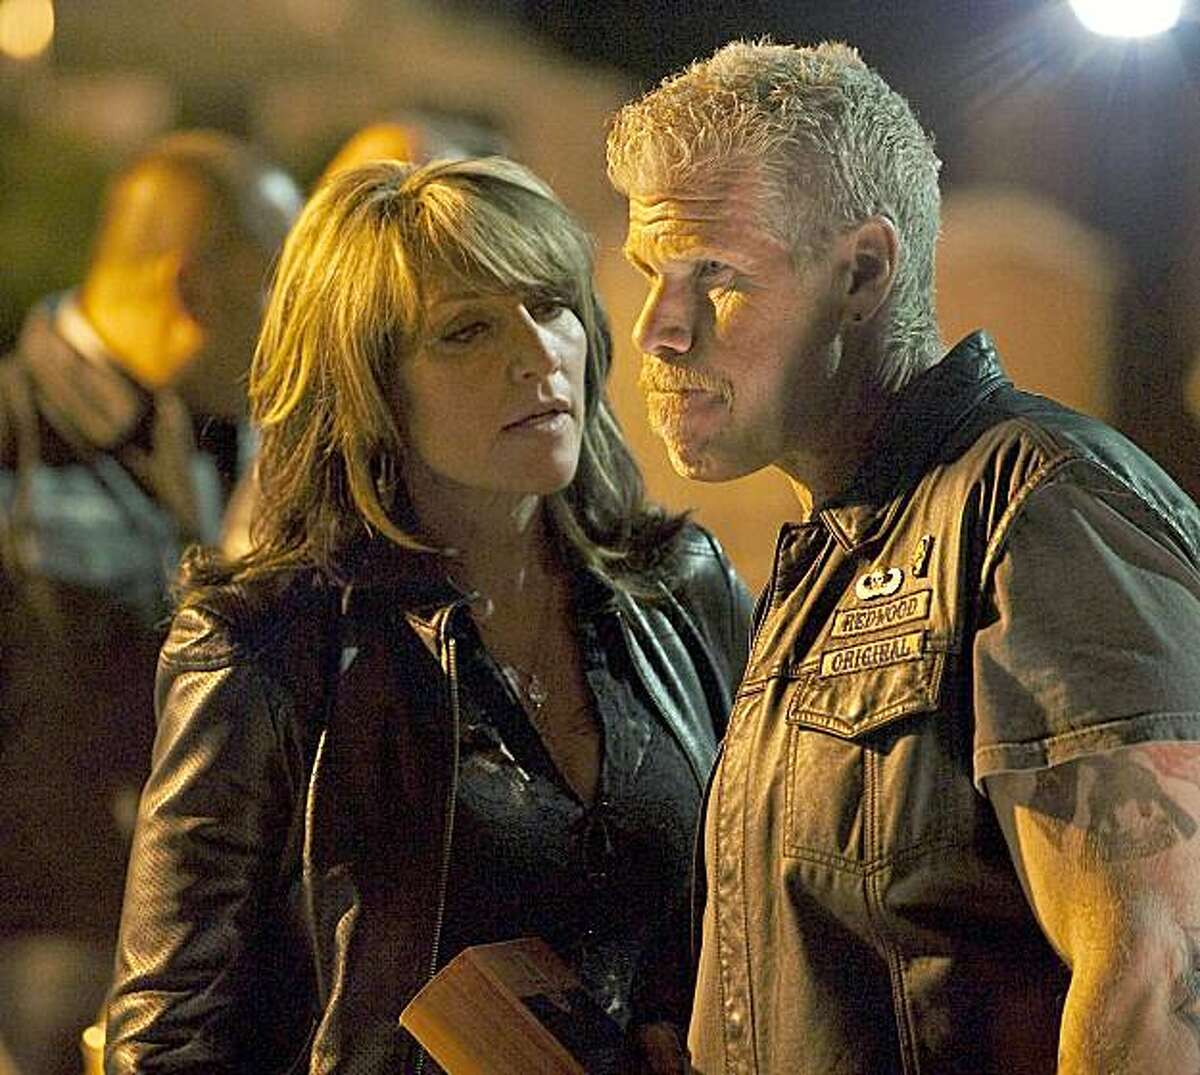 SONS OF ANARCHY: 201: L-R: Katey Sagal as Gemma Teller and Ron Perlman as Clay Morrow on the episode